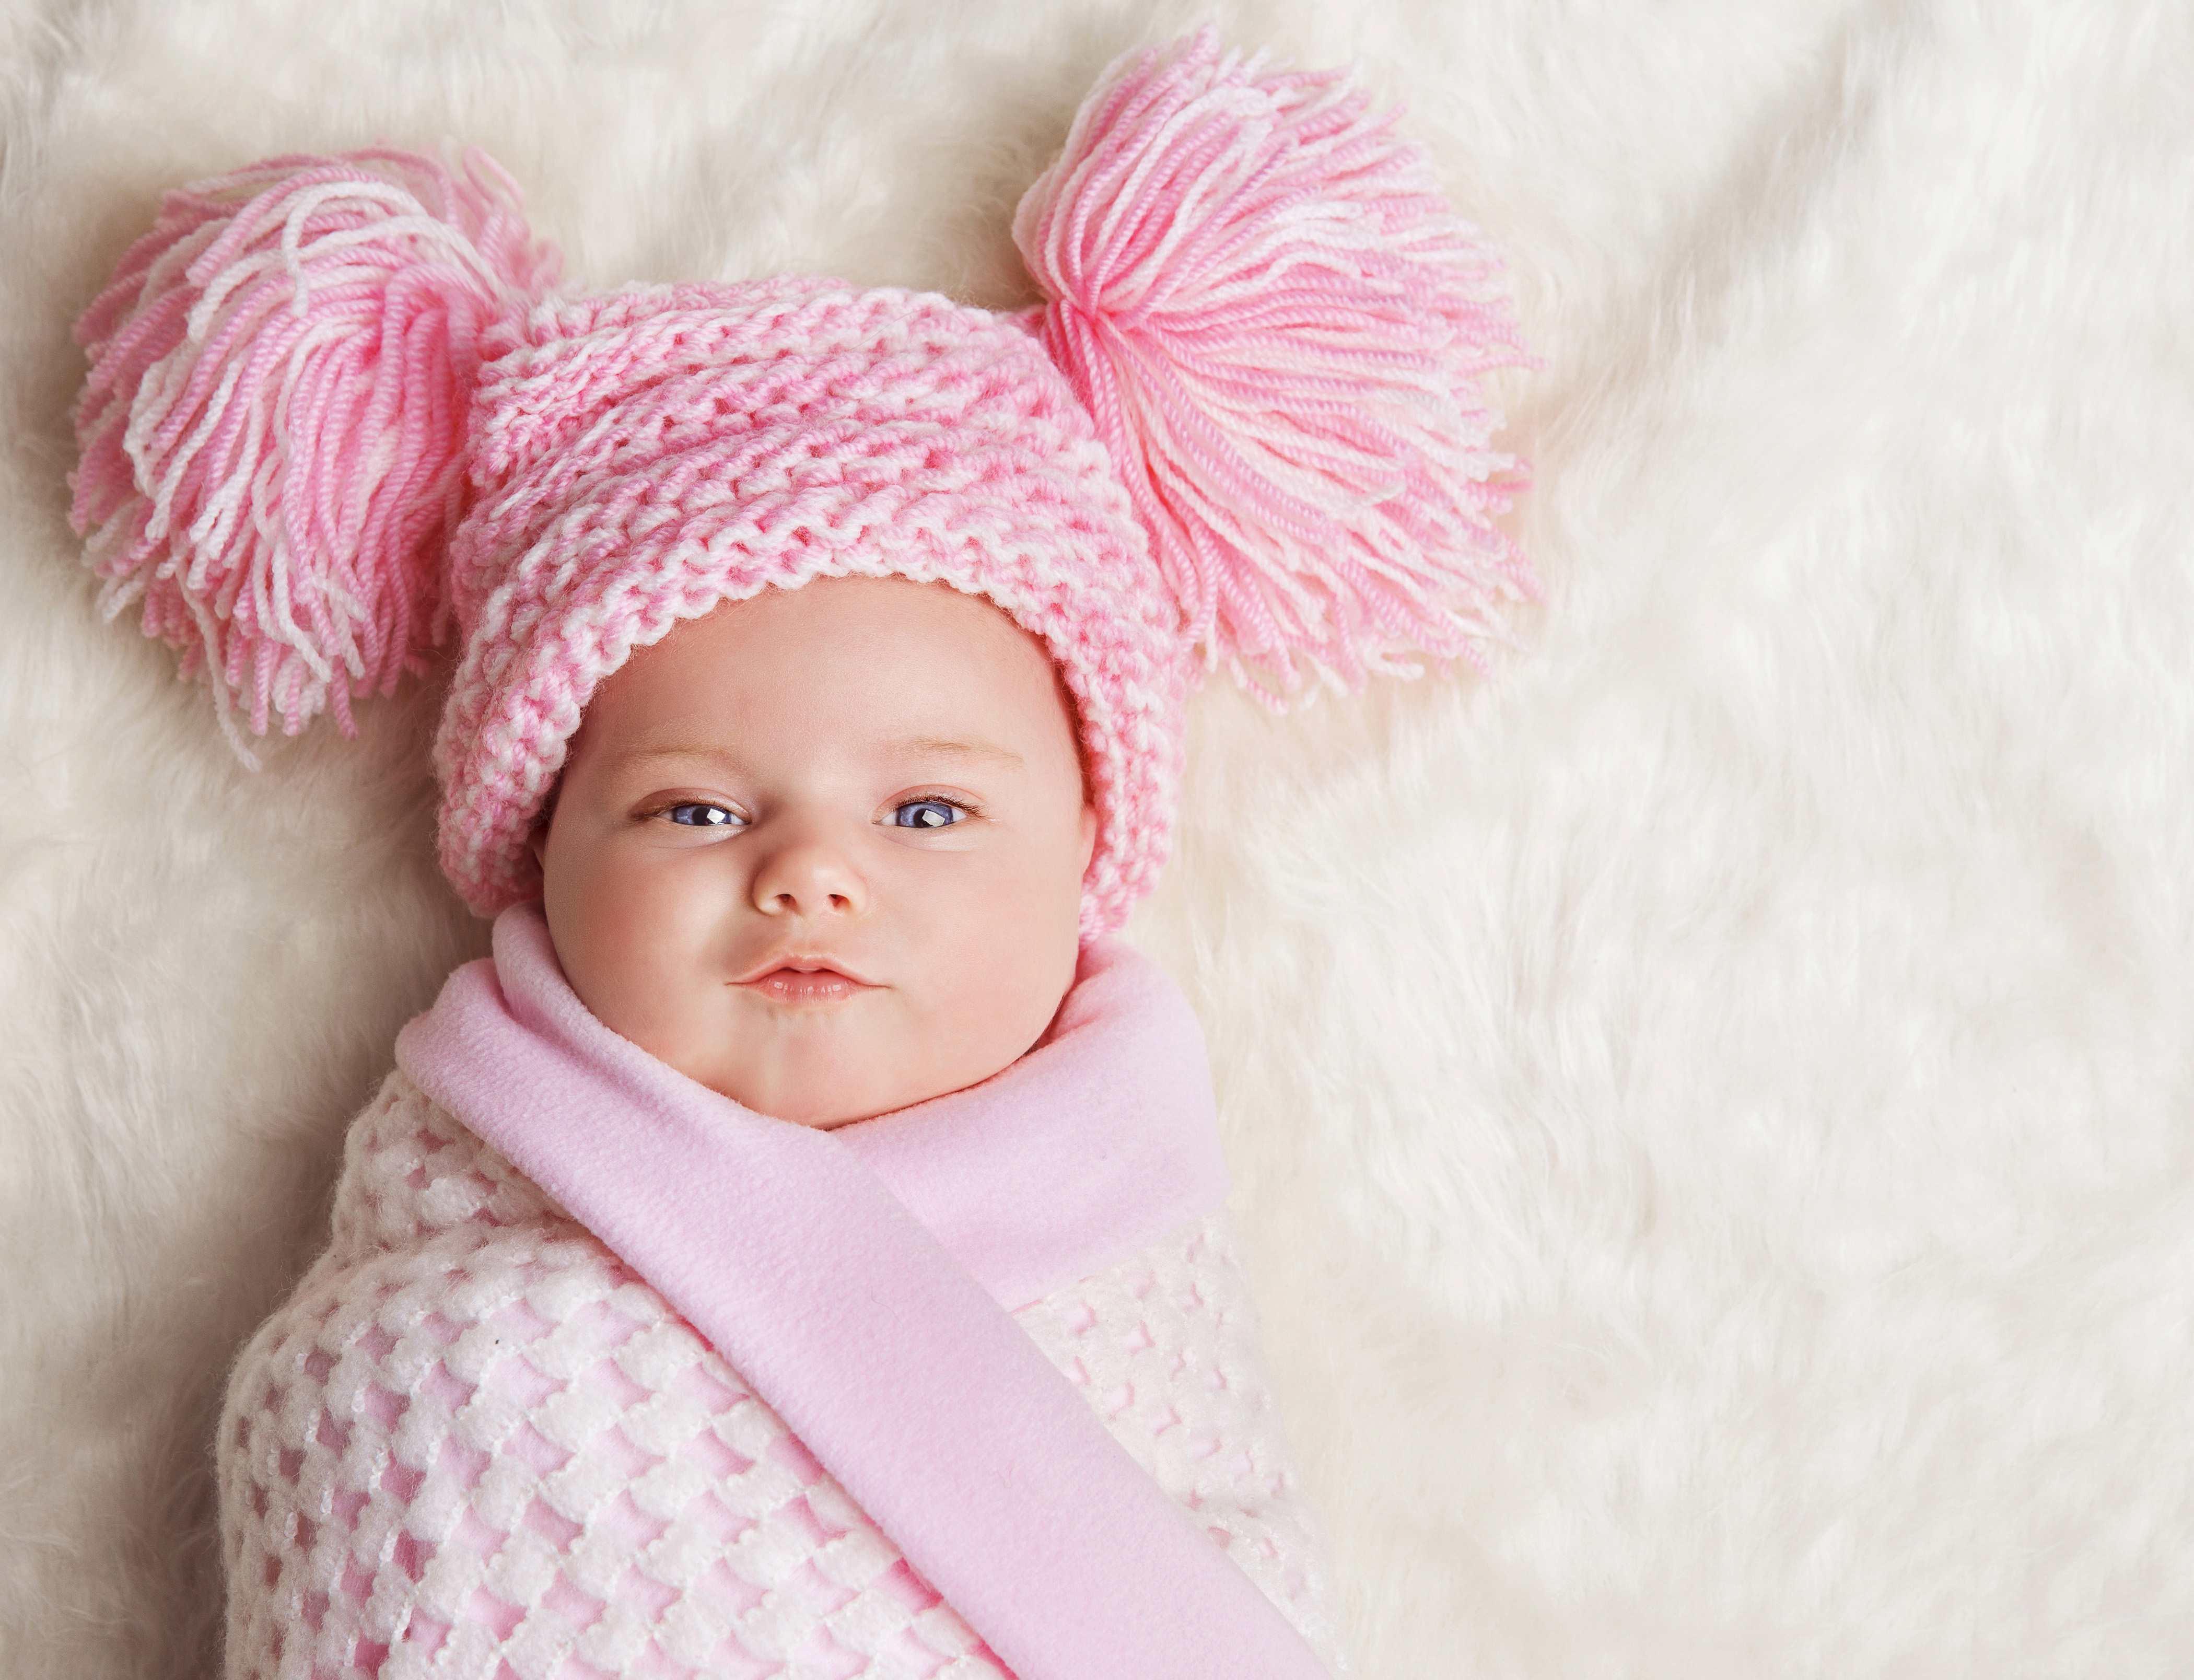 Cute Girl Baby Kid Child Pink 4K Wallpaper - Best Wallpapers